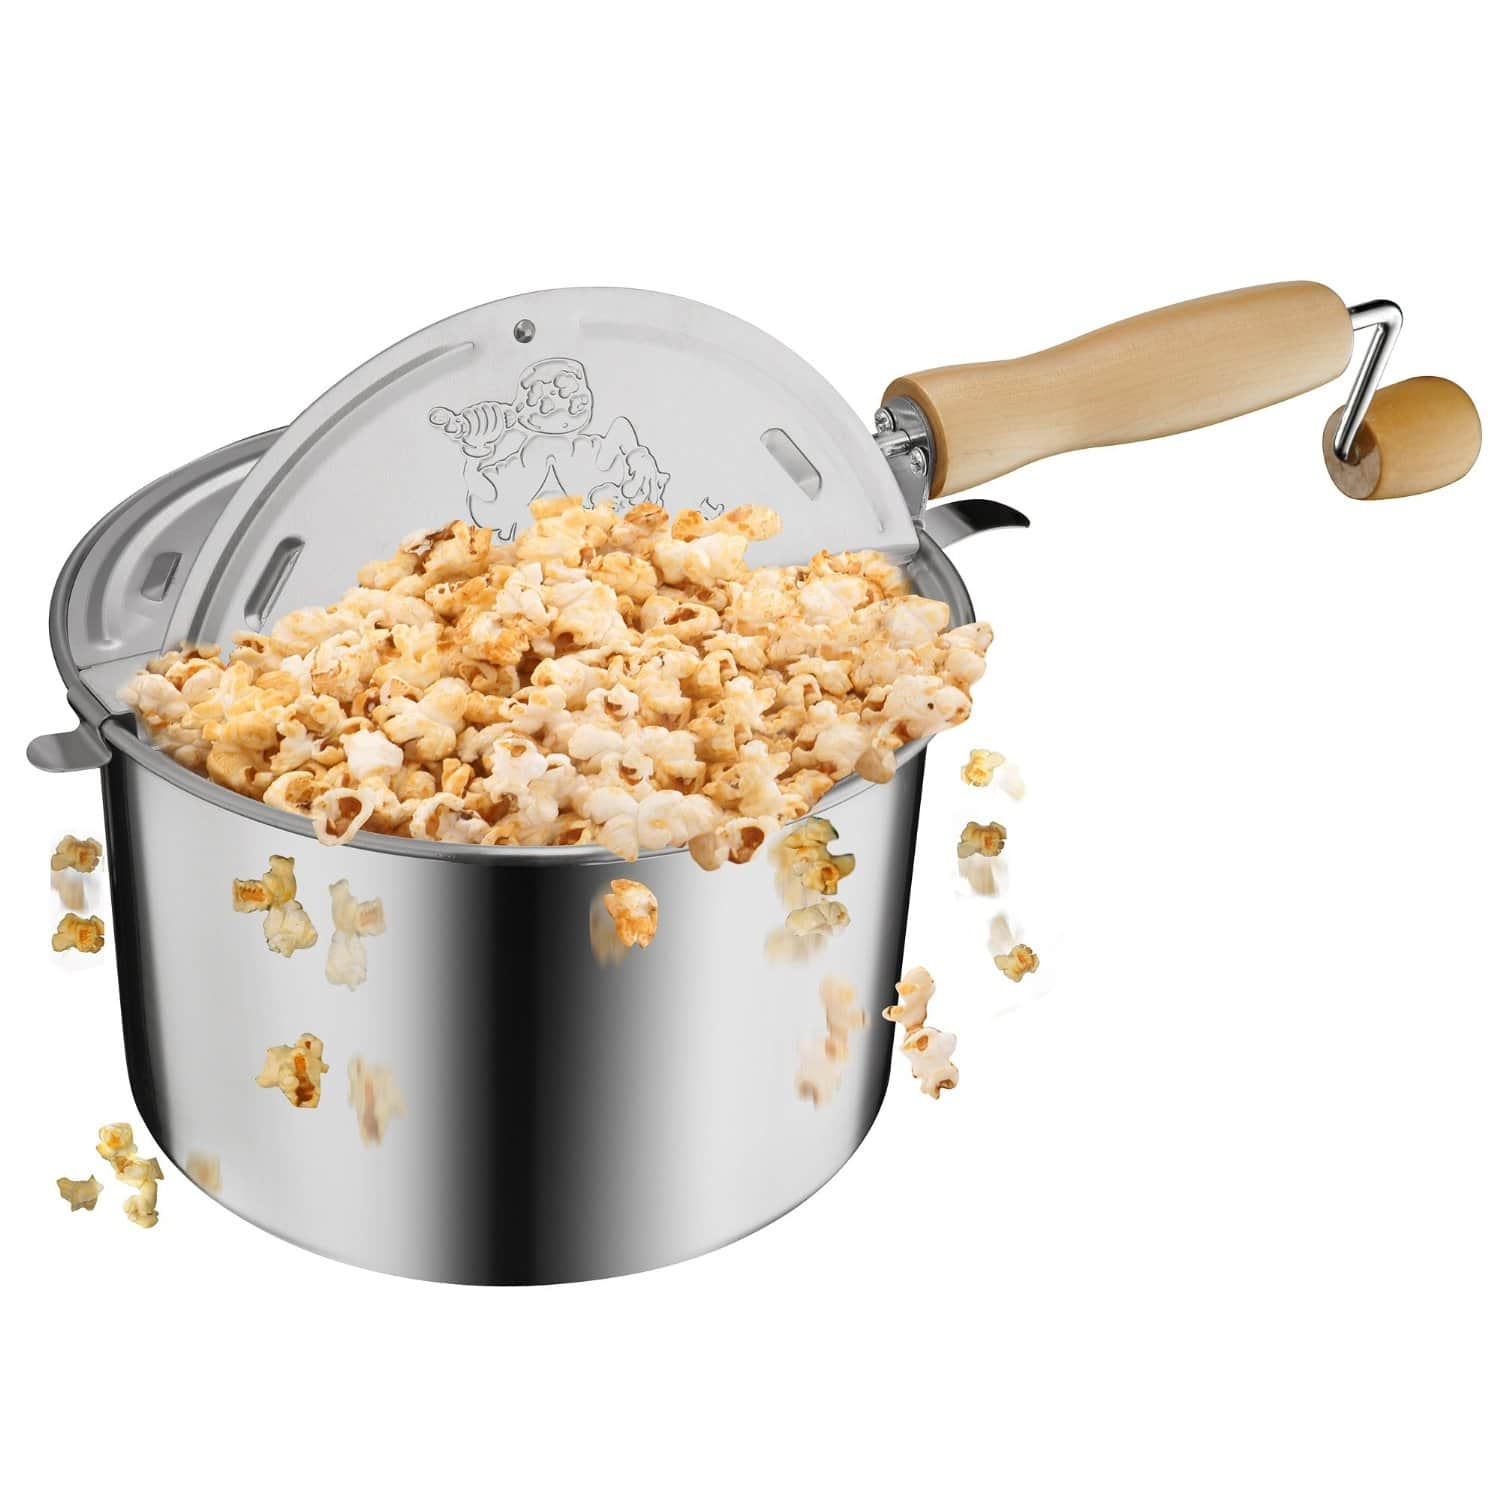 Great Northern Popcorn Original Stainless Steel Stove Top 6-1/2-Quart Popcorn Popper. $18.00 + Free Shipping w/Prime